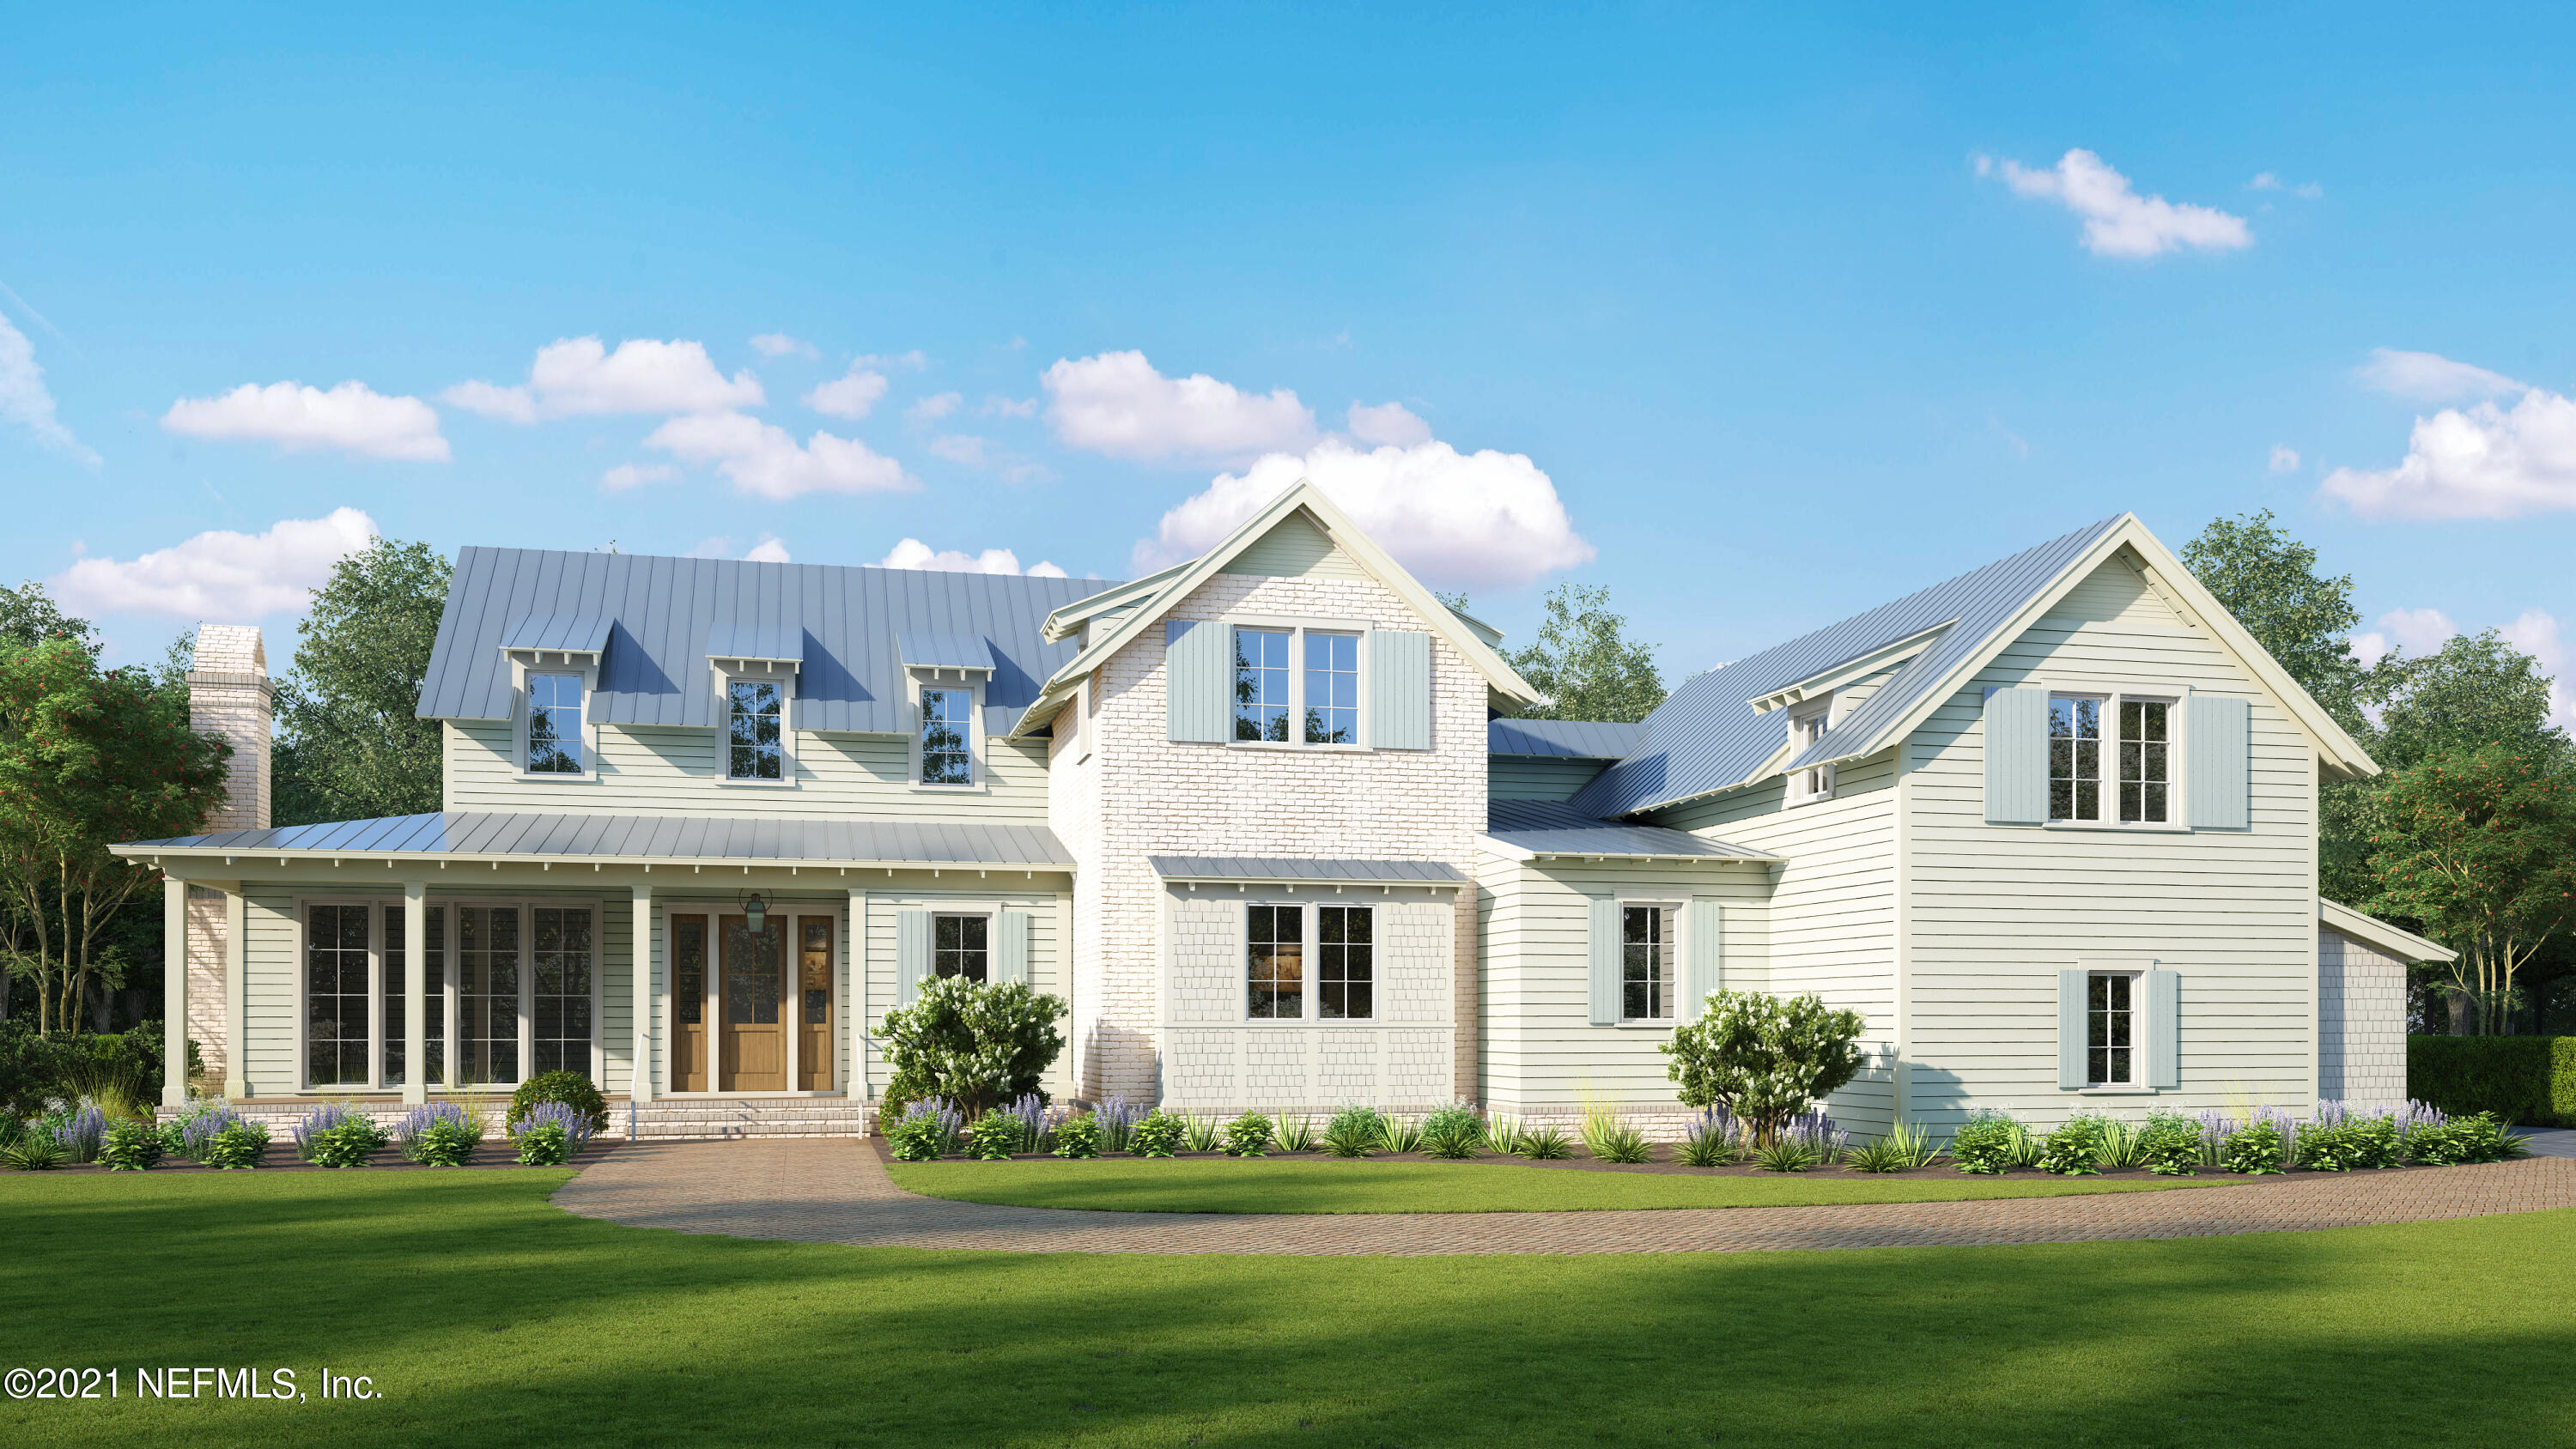 New Intracoastal Community in Ponte Vedra Beach:  Coastal Grove Estates.  15 One Acre Lots!  The Longleaf Plan is a Low Country inspired home with a mixture of Hardie Board Lap siding, painted white Brick and Metal Roof.  An open floorplan w/ a 2-story Great Room, 3-Car Garage, Office, Mudroom, 1st FL Owner's Suite & all ensuite Guest Bedrooms.  Amazing Outdoor Living featuring a beautiful Screened in Porch and a rear covered Lanai. Totally Separate Guest Wing over the Garage with separate Living, Bedroom, Bath & Breakfast Bar.  Thermador Appliances, Double Ovens, Ceramic Farmhouse Sink & Shaker Wood Cabinets. Open Cell Spray Foam Insulation, Pella Lifestyle Wood/Aluminum Clad Windows. Other Lots and Floorplans available.  Prices range from $1.8M -$2.1 M. Buyer to make interior selection